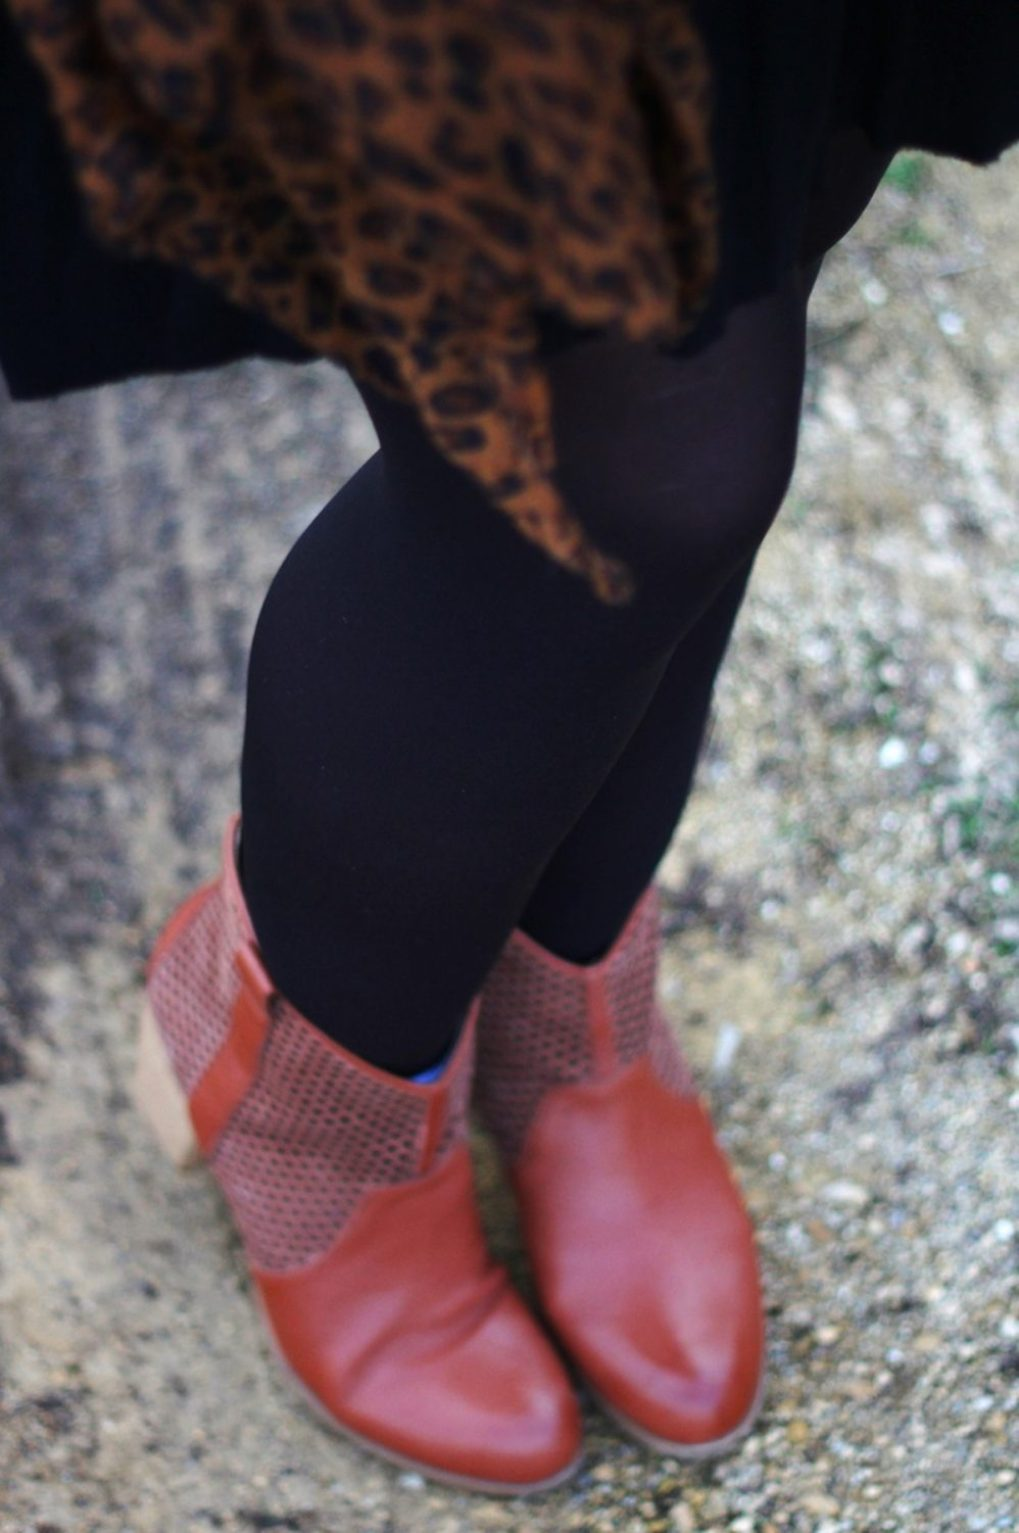 Outfit details: leopard print scarf, black skater skirt, black tights, cognac colored boots